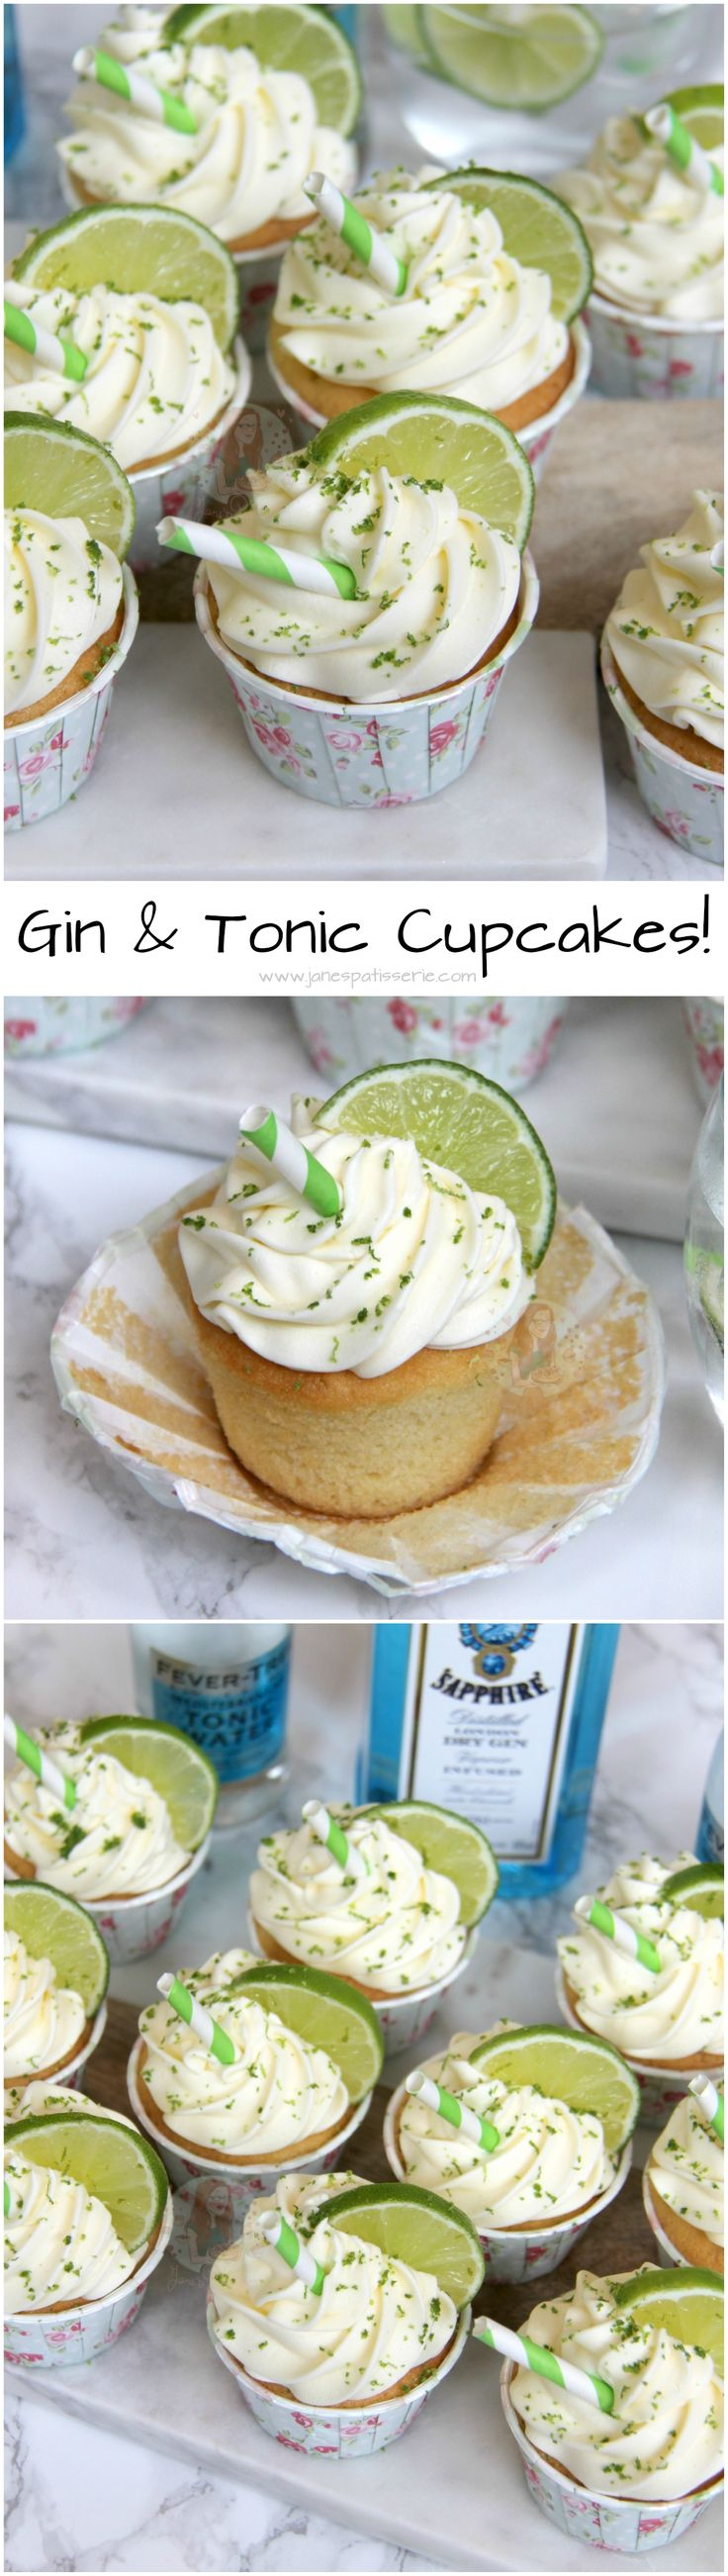 Gin & Tonic Cupcakes! ❤️ Soft and Delicious Gin & Tonic Sponges, with Gin & Tonic Buttercream Frosting, Lime, and a little Straw to Decorate!